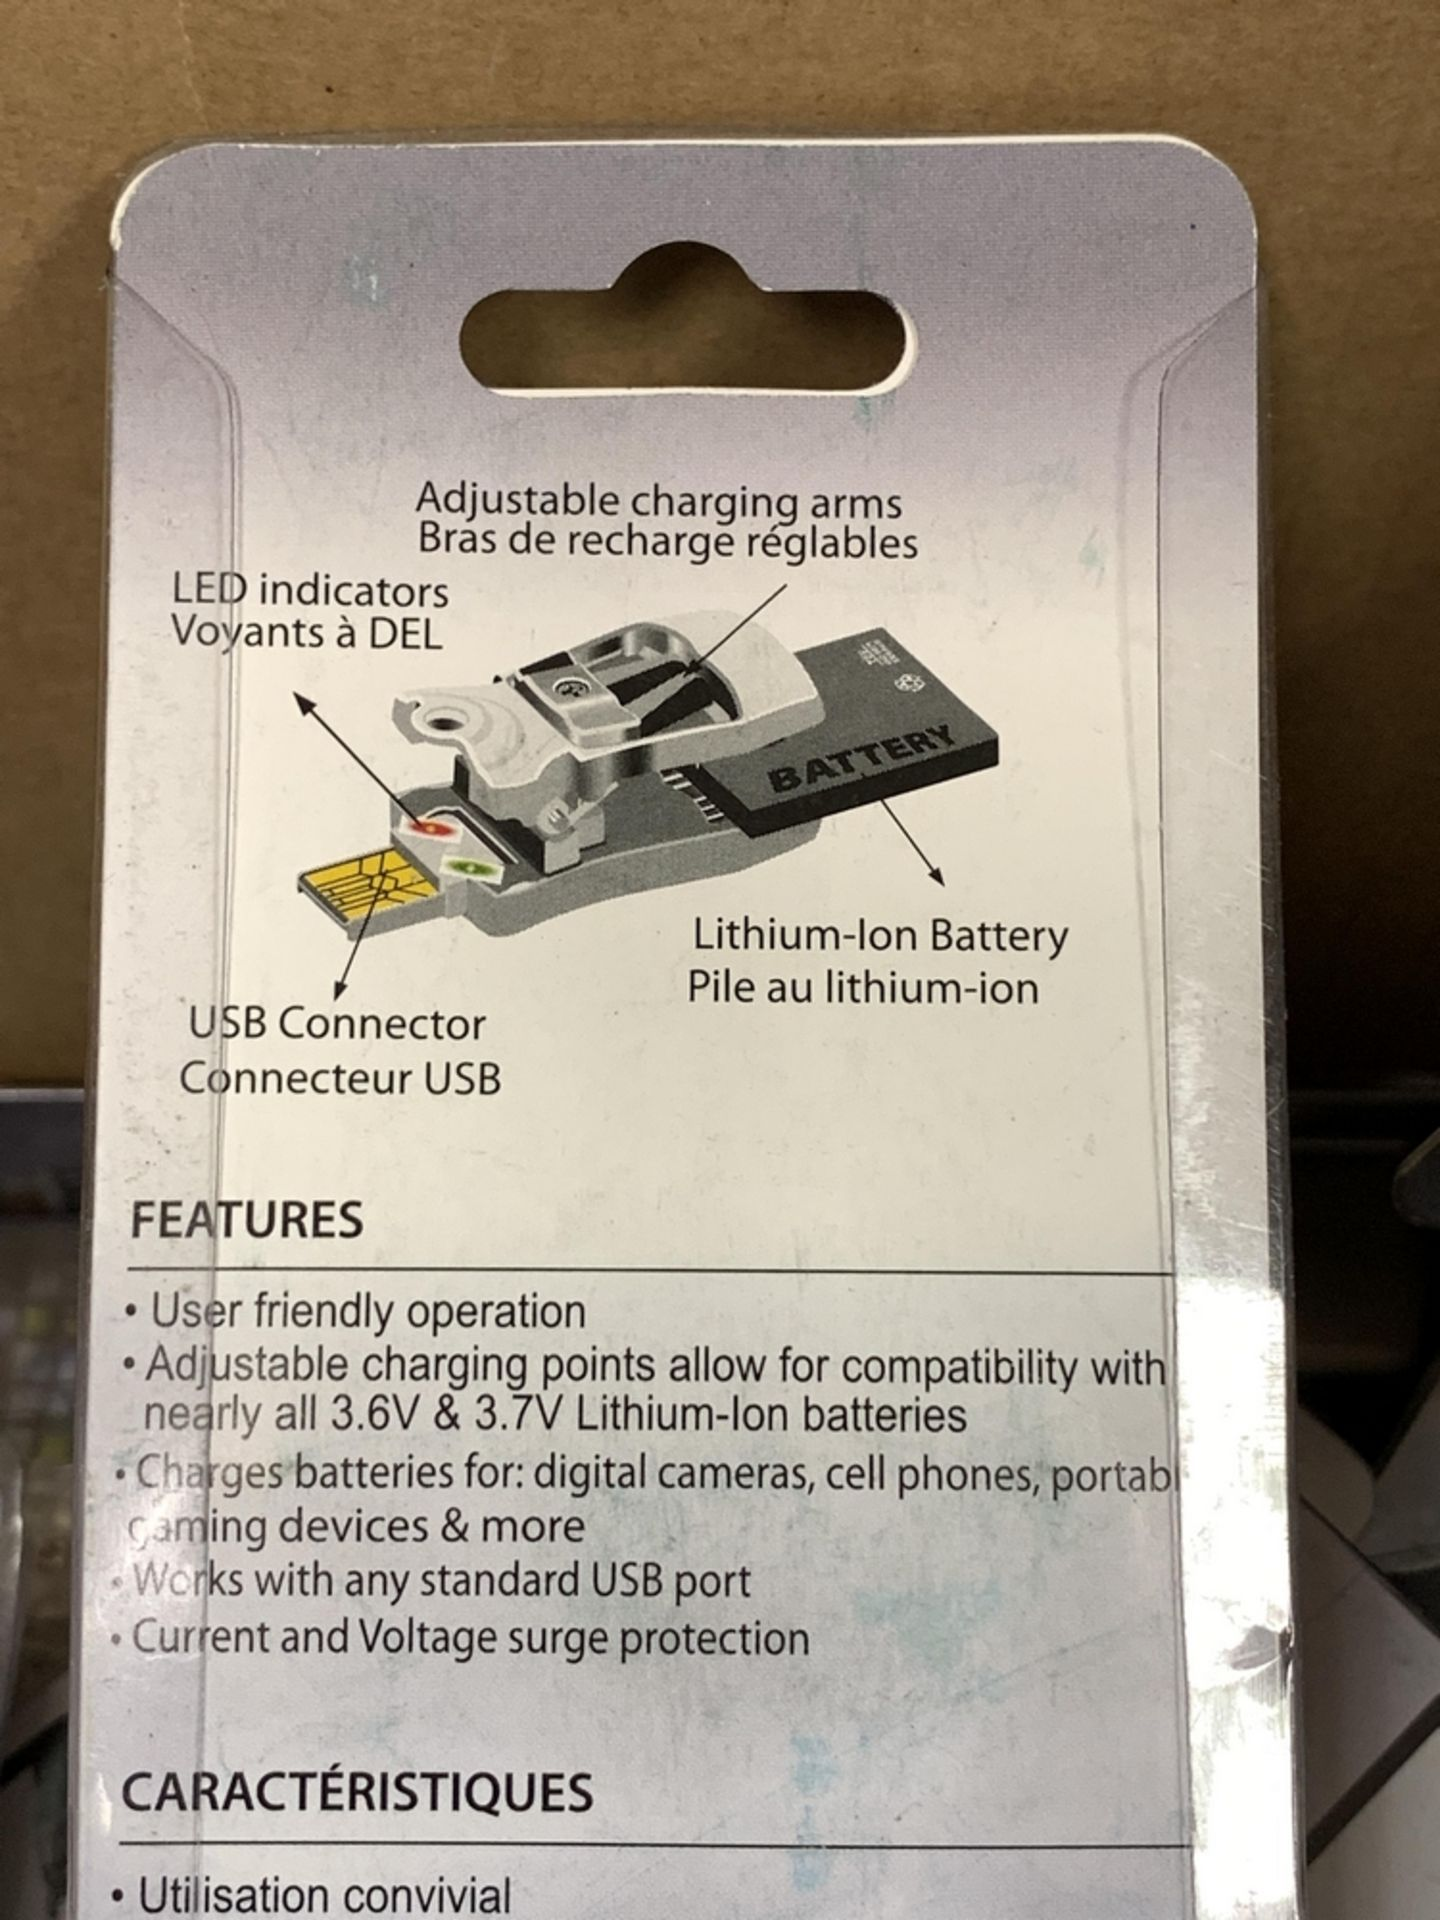 Lot 35 - LOT OF 55 UNIVERSAL CLIP USB BATTERY CHARGERS BY FIDELITY ELECTRICS, ADJUSTABLE CHARGING POINTS